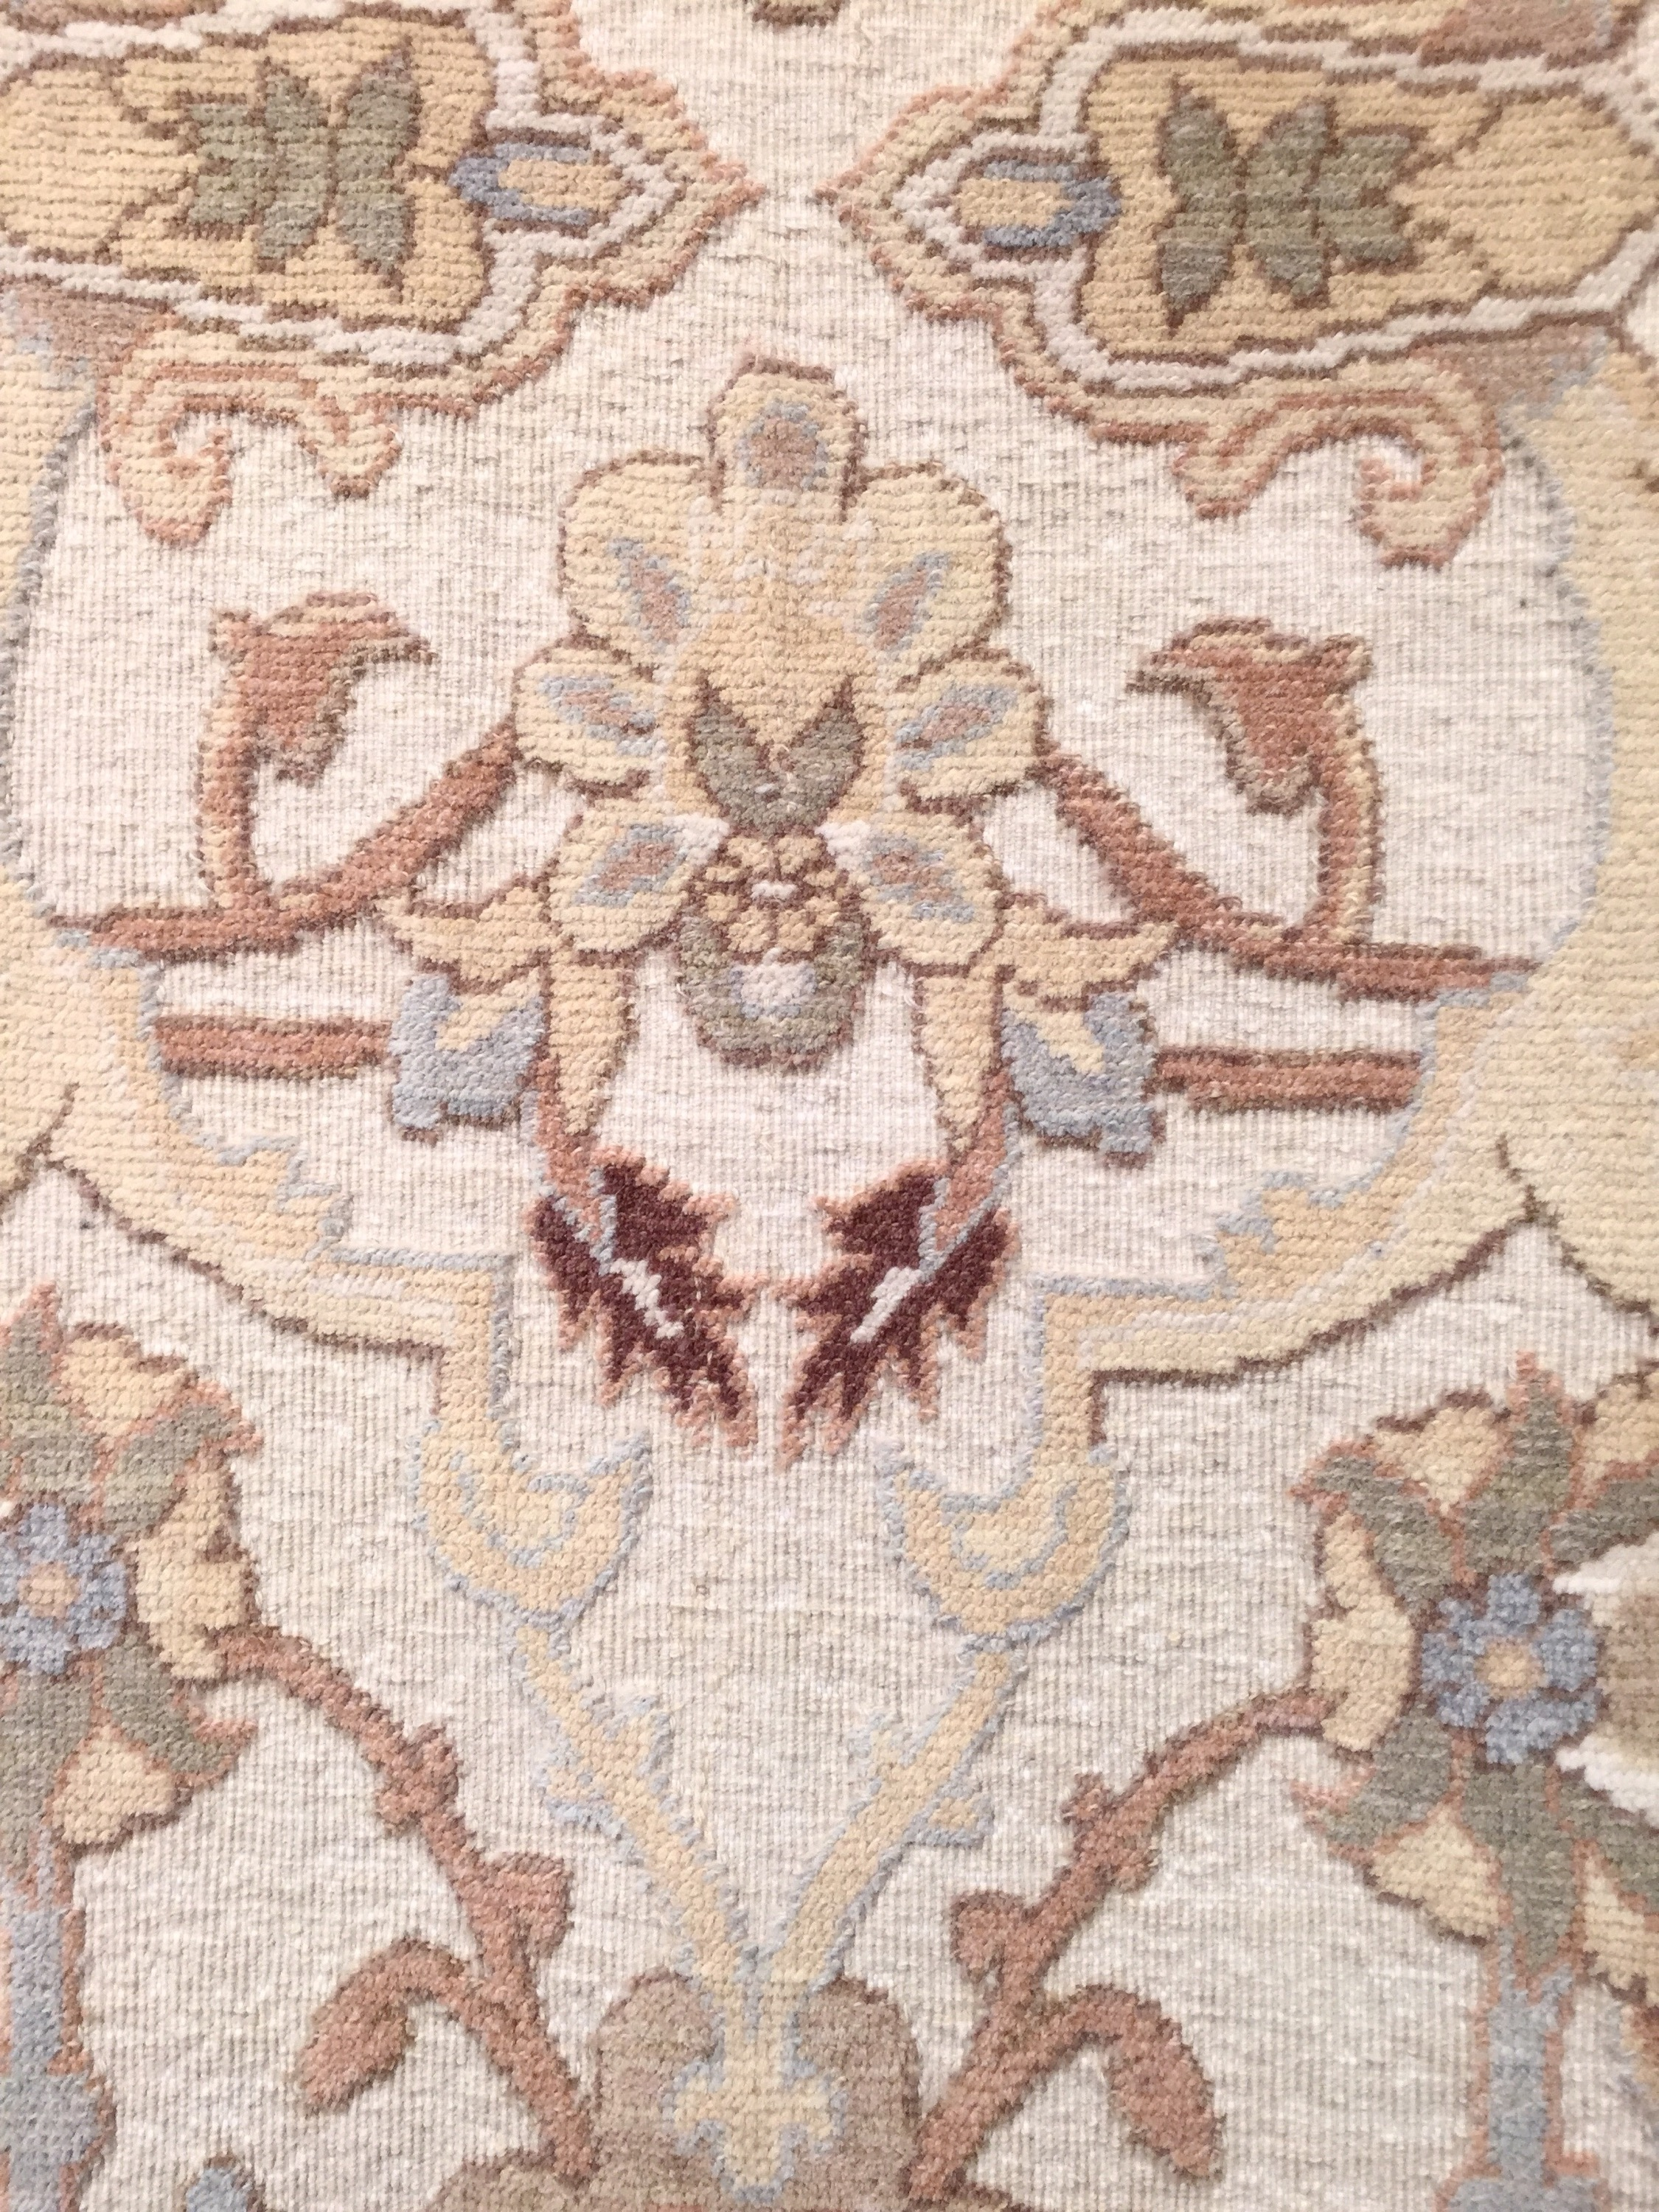 Stone Washed Marco Polo Oriental Rugs At Americasmart